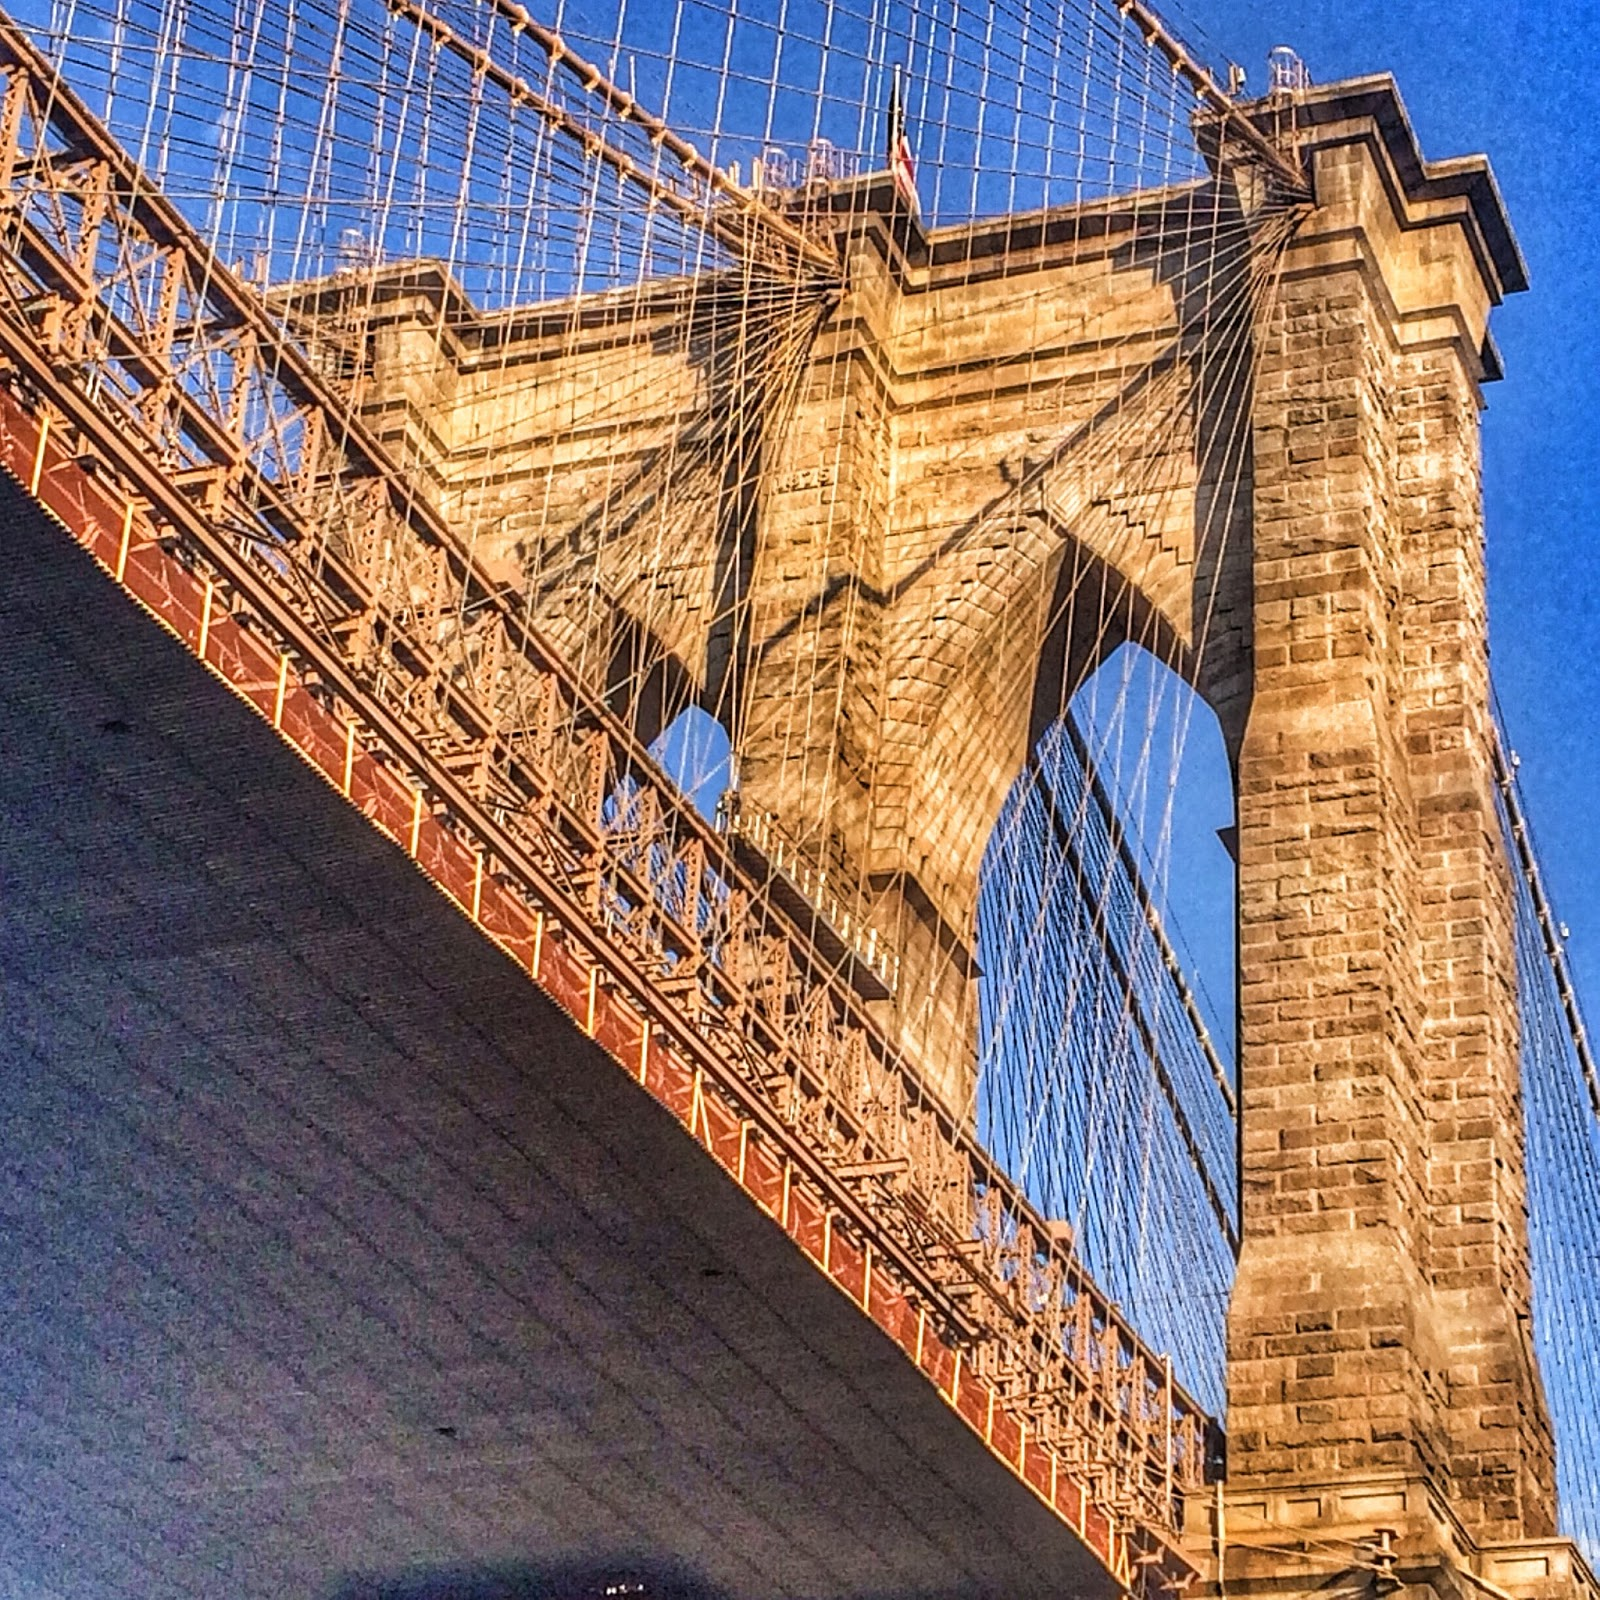 Brooklyn Bridge, #brooklynbridge #nyc 2014